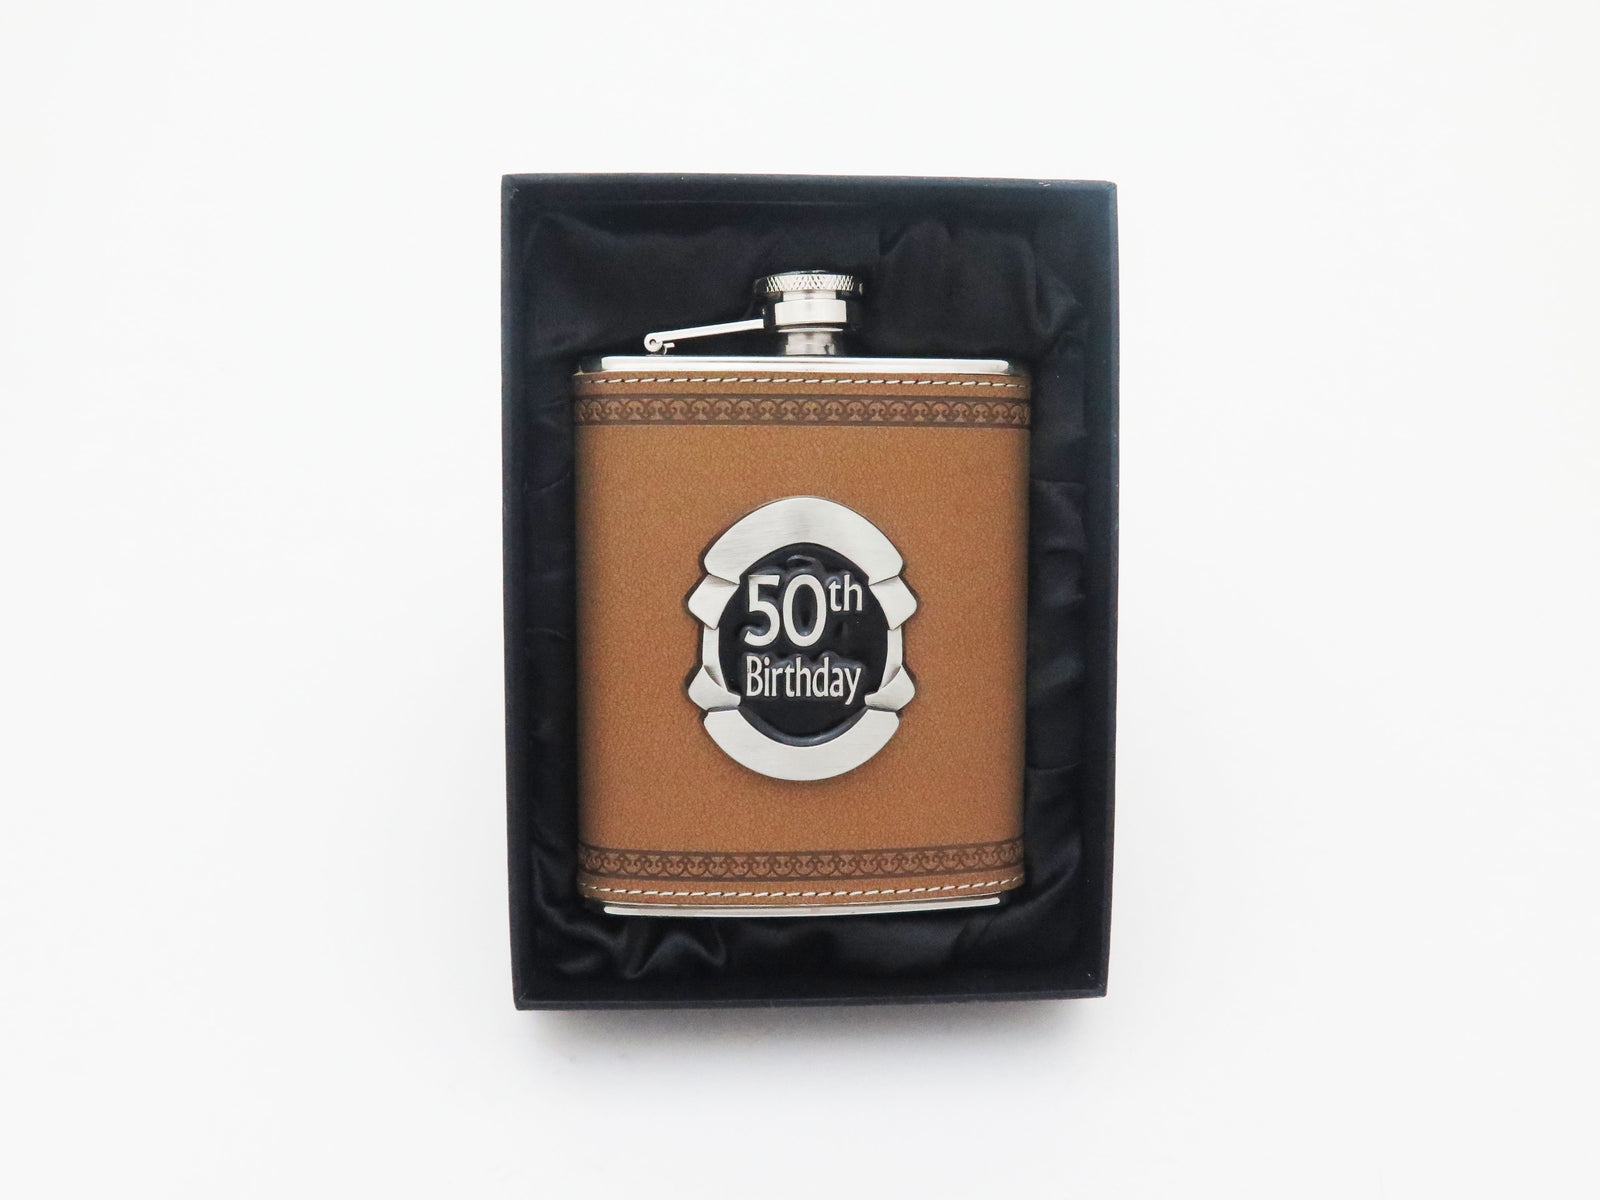 50th Birthday Hip Flask